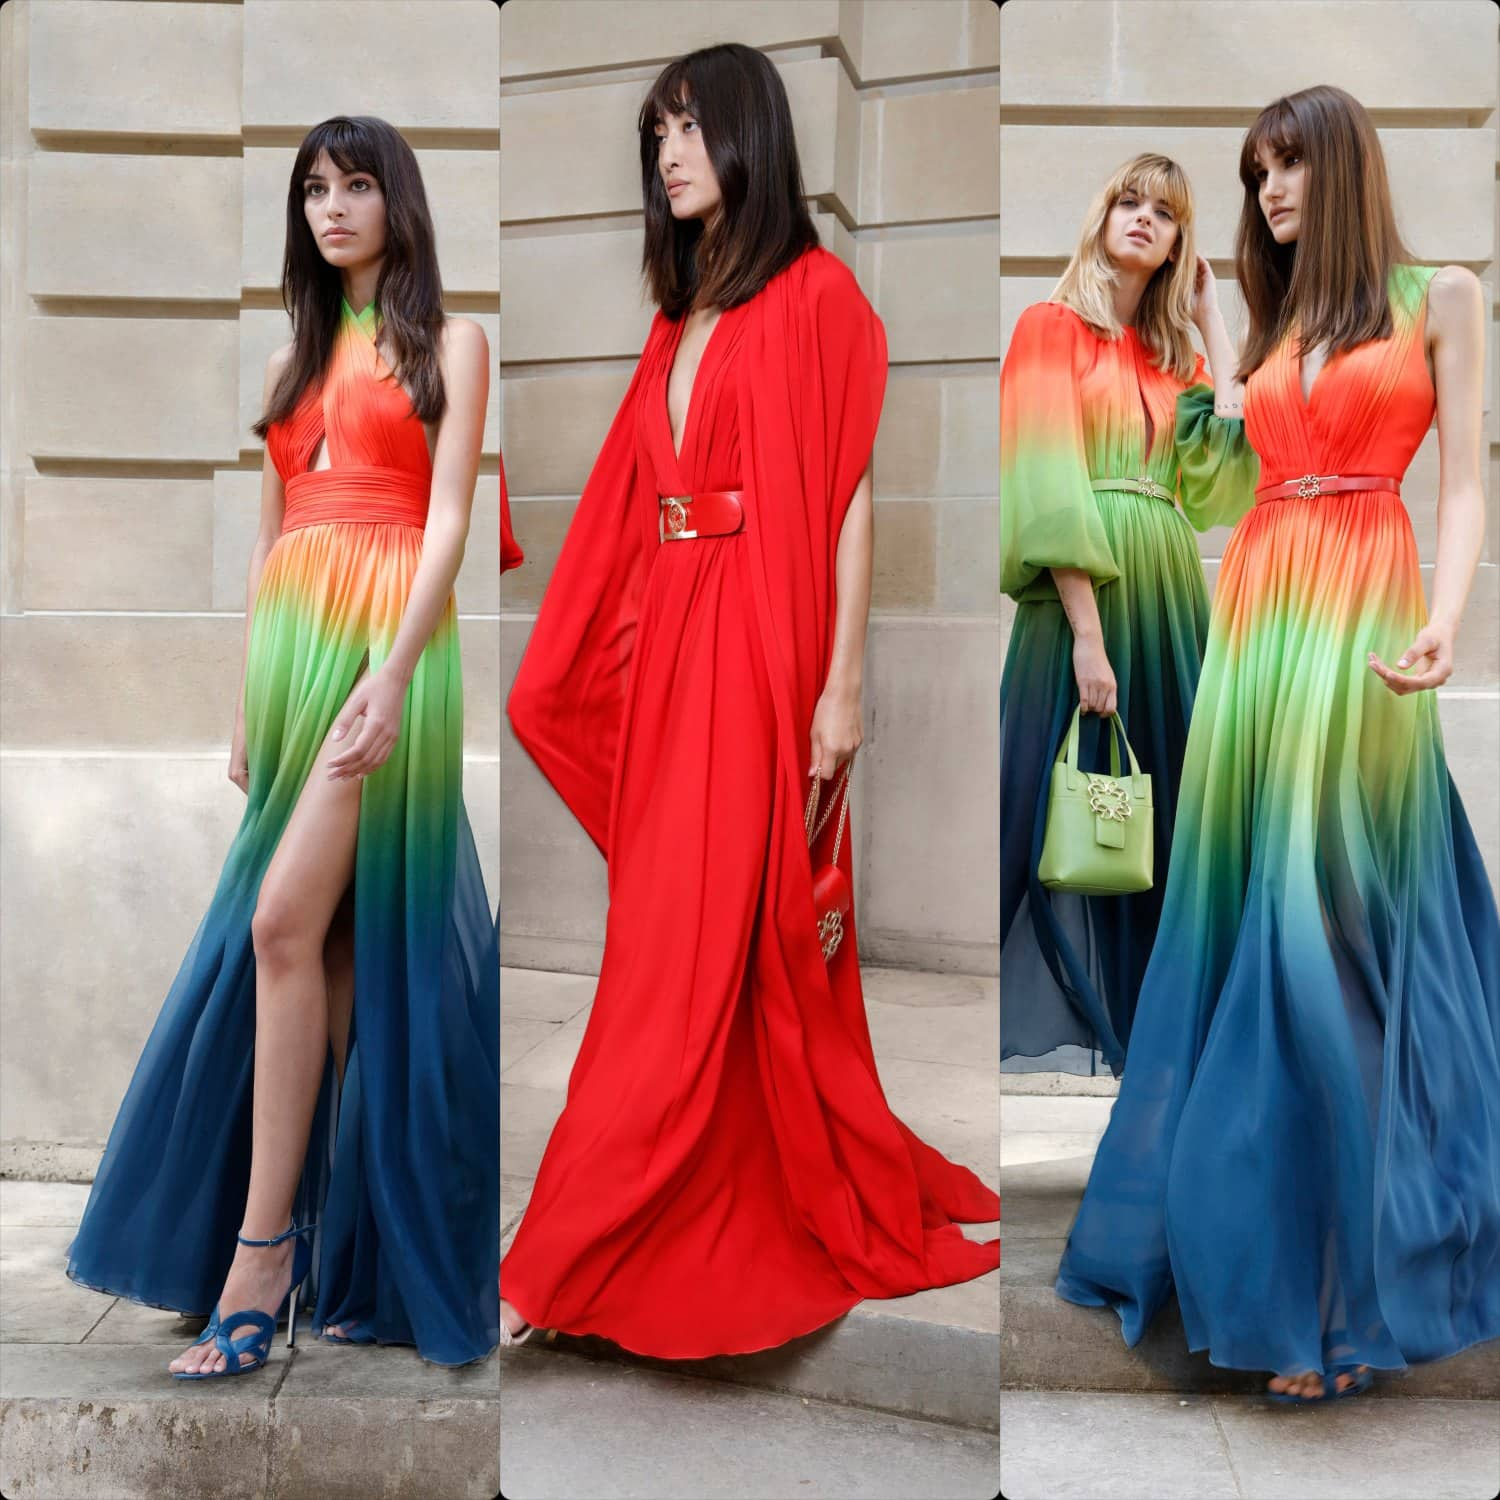 Elie Saab Spring Summer 2022 Ready-to-Wear. RUNWAY MAGAZINE ® Collections. RUNWAY NOW / RUNWAY NEW